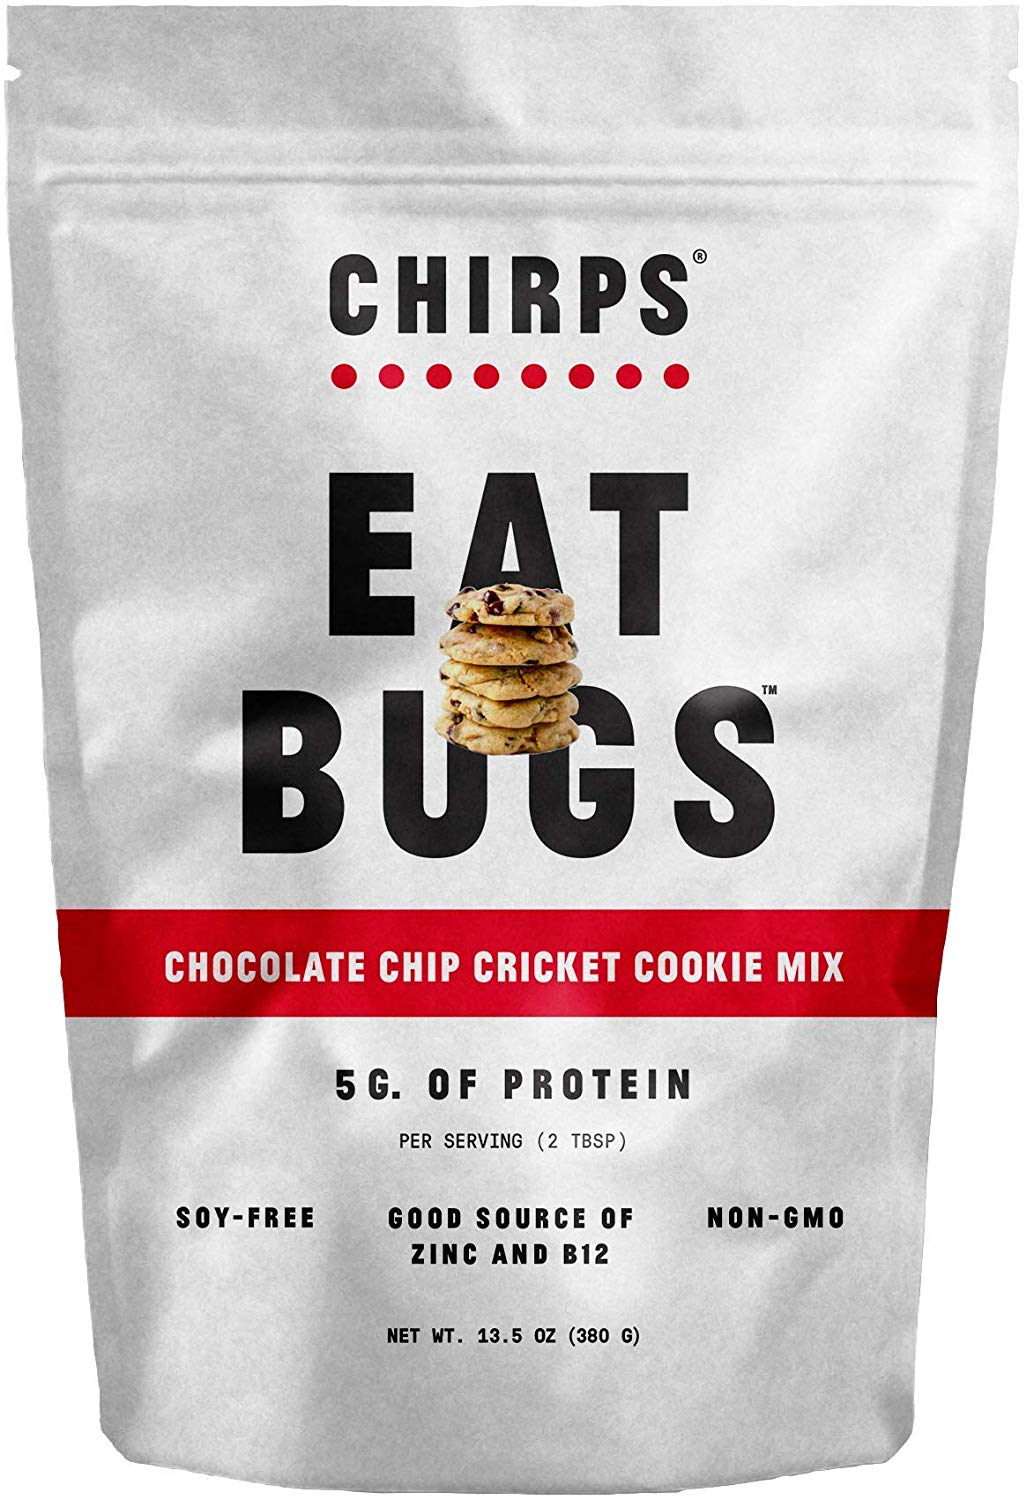 Chocolate Chip Cricket Cookie Mix with Cricket Powder